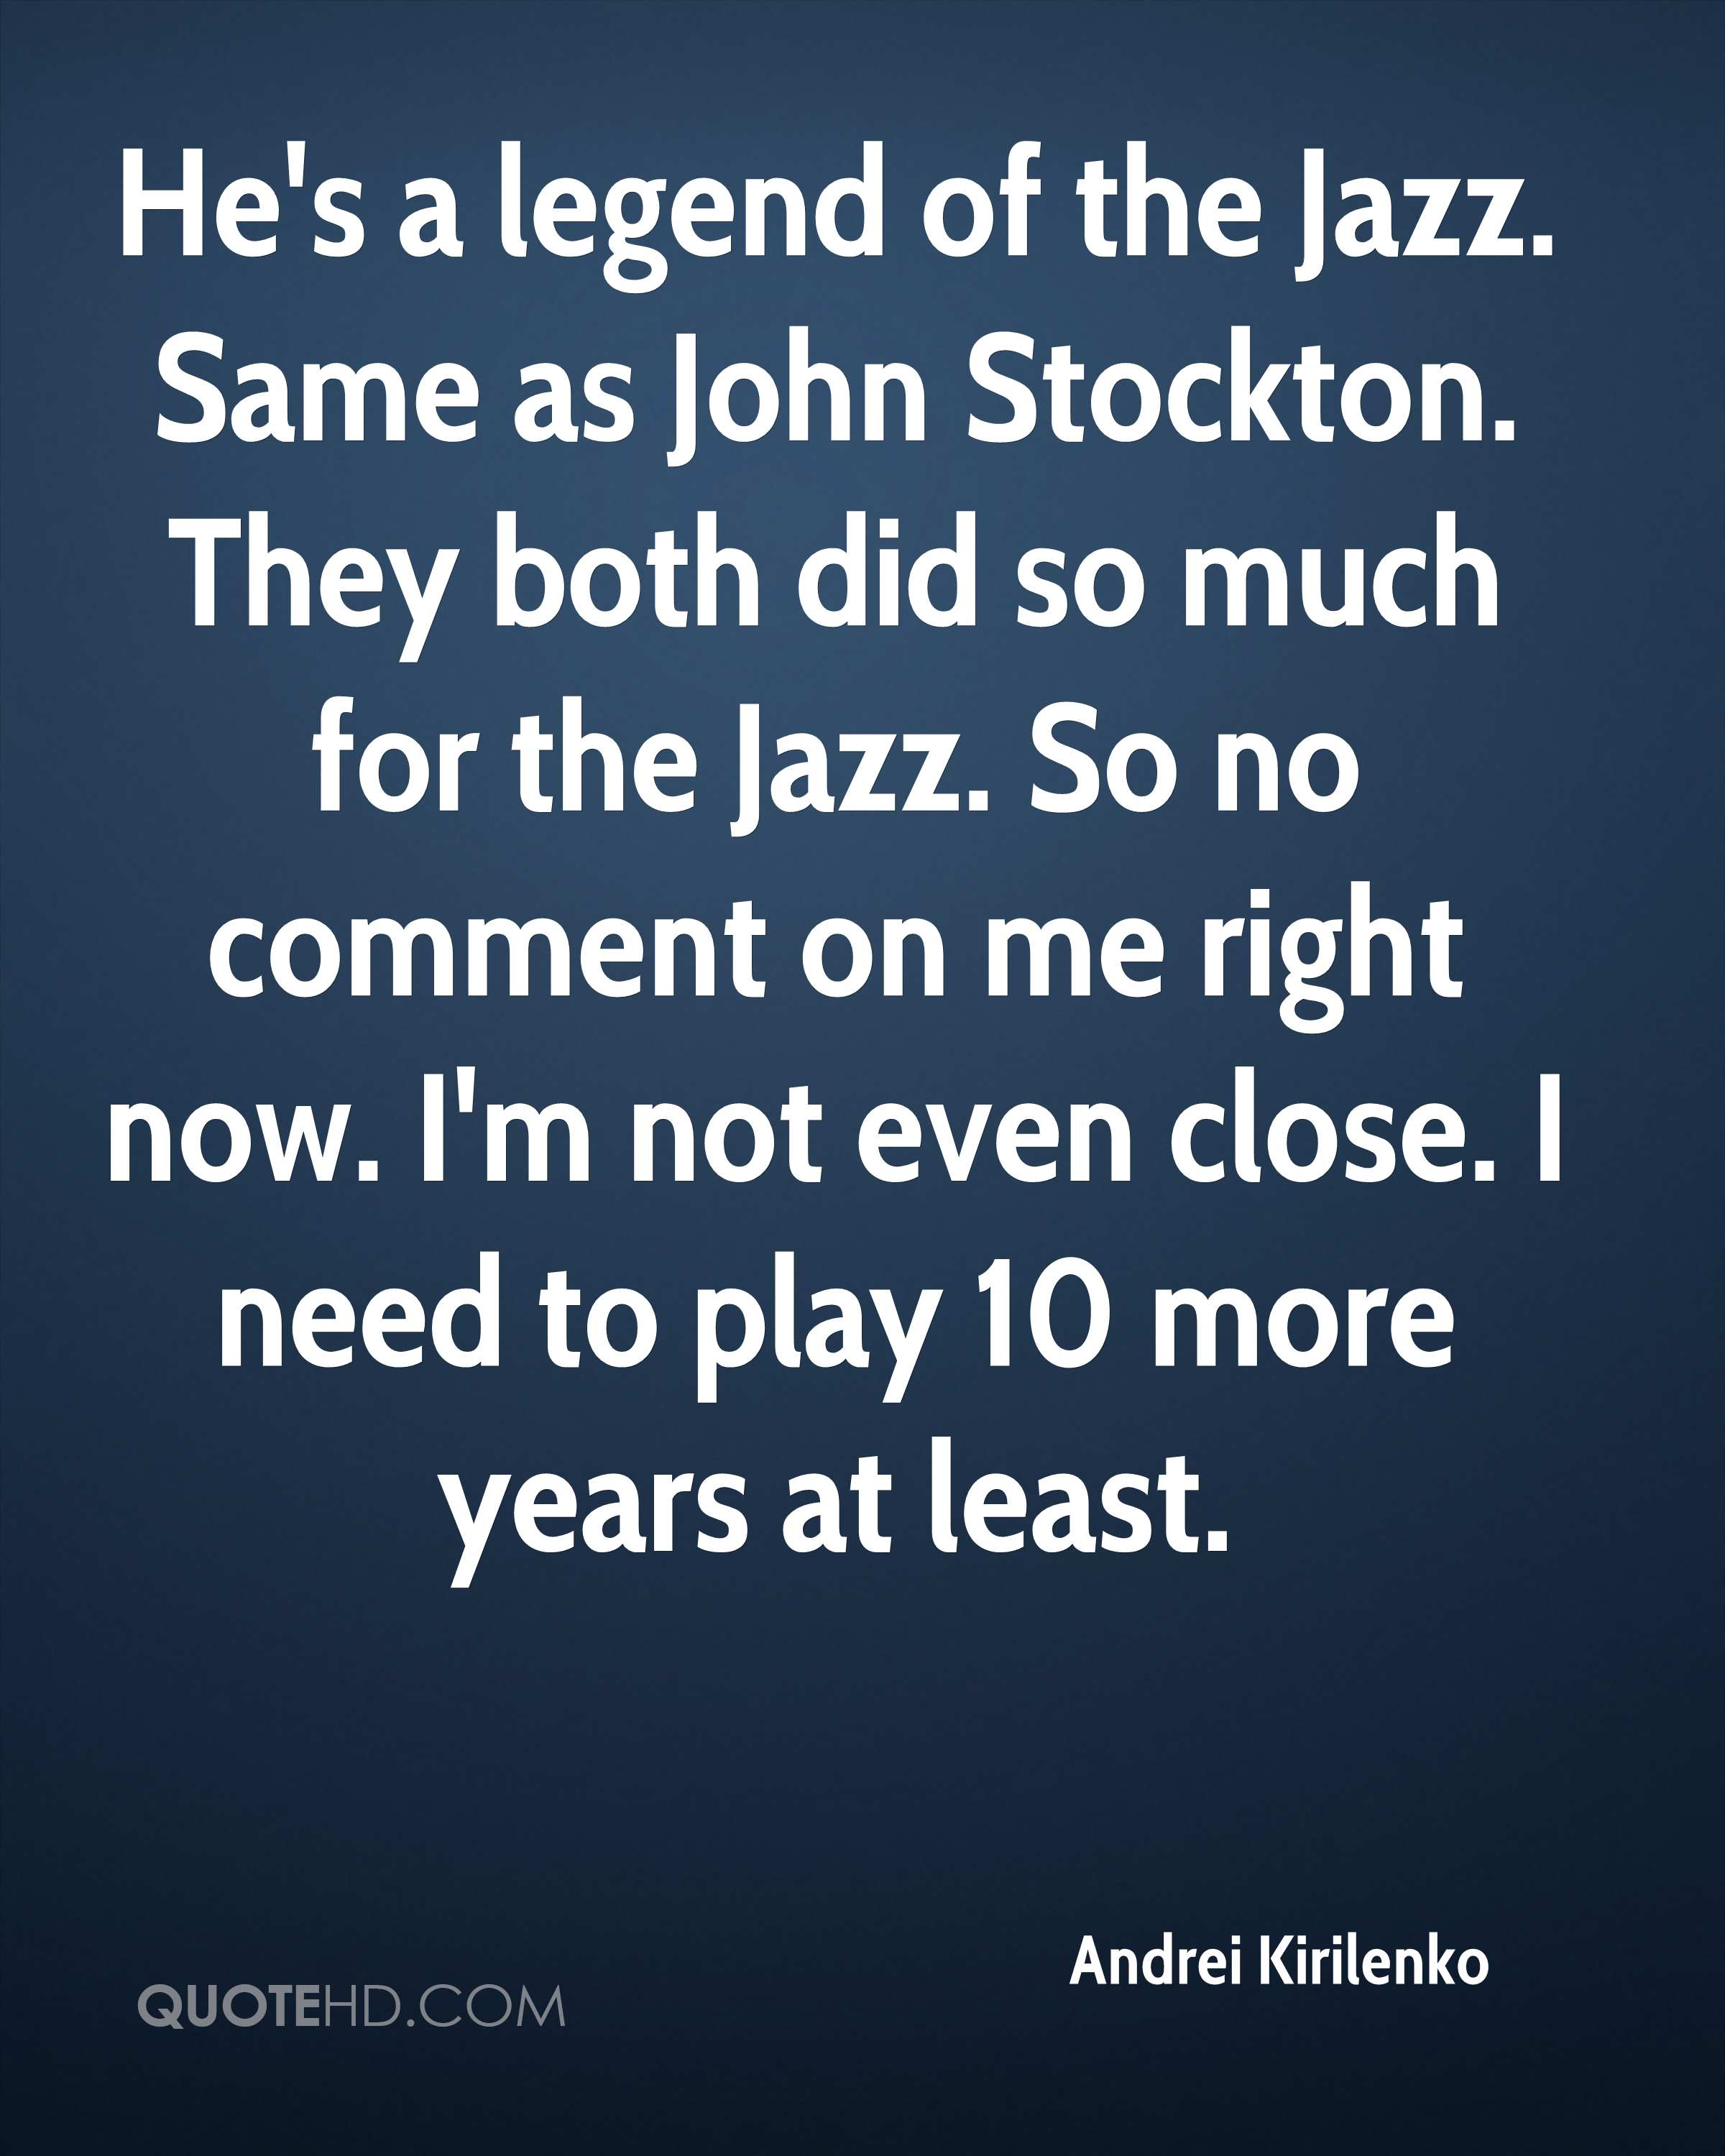 He's a legend of the Jazz. Same as John Stockton. They both did so much for the Jazz. So no comment on me right now. I'm not even close. I need to play 10 more years at least.